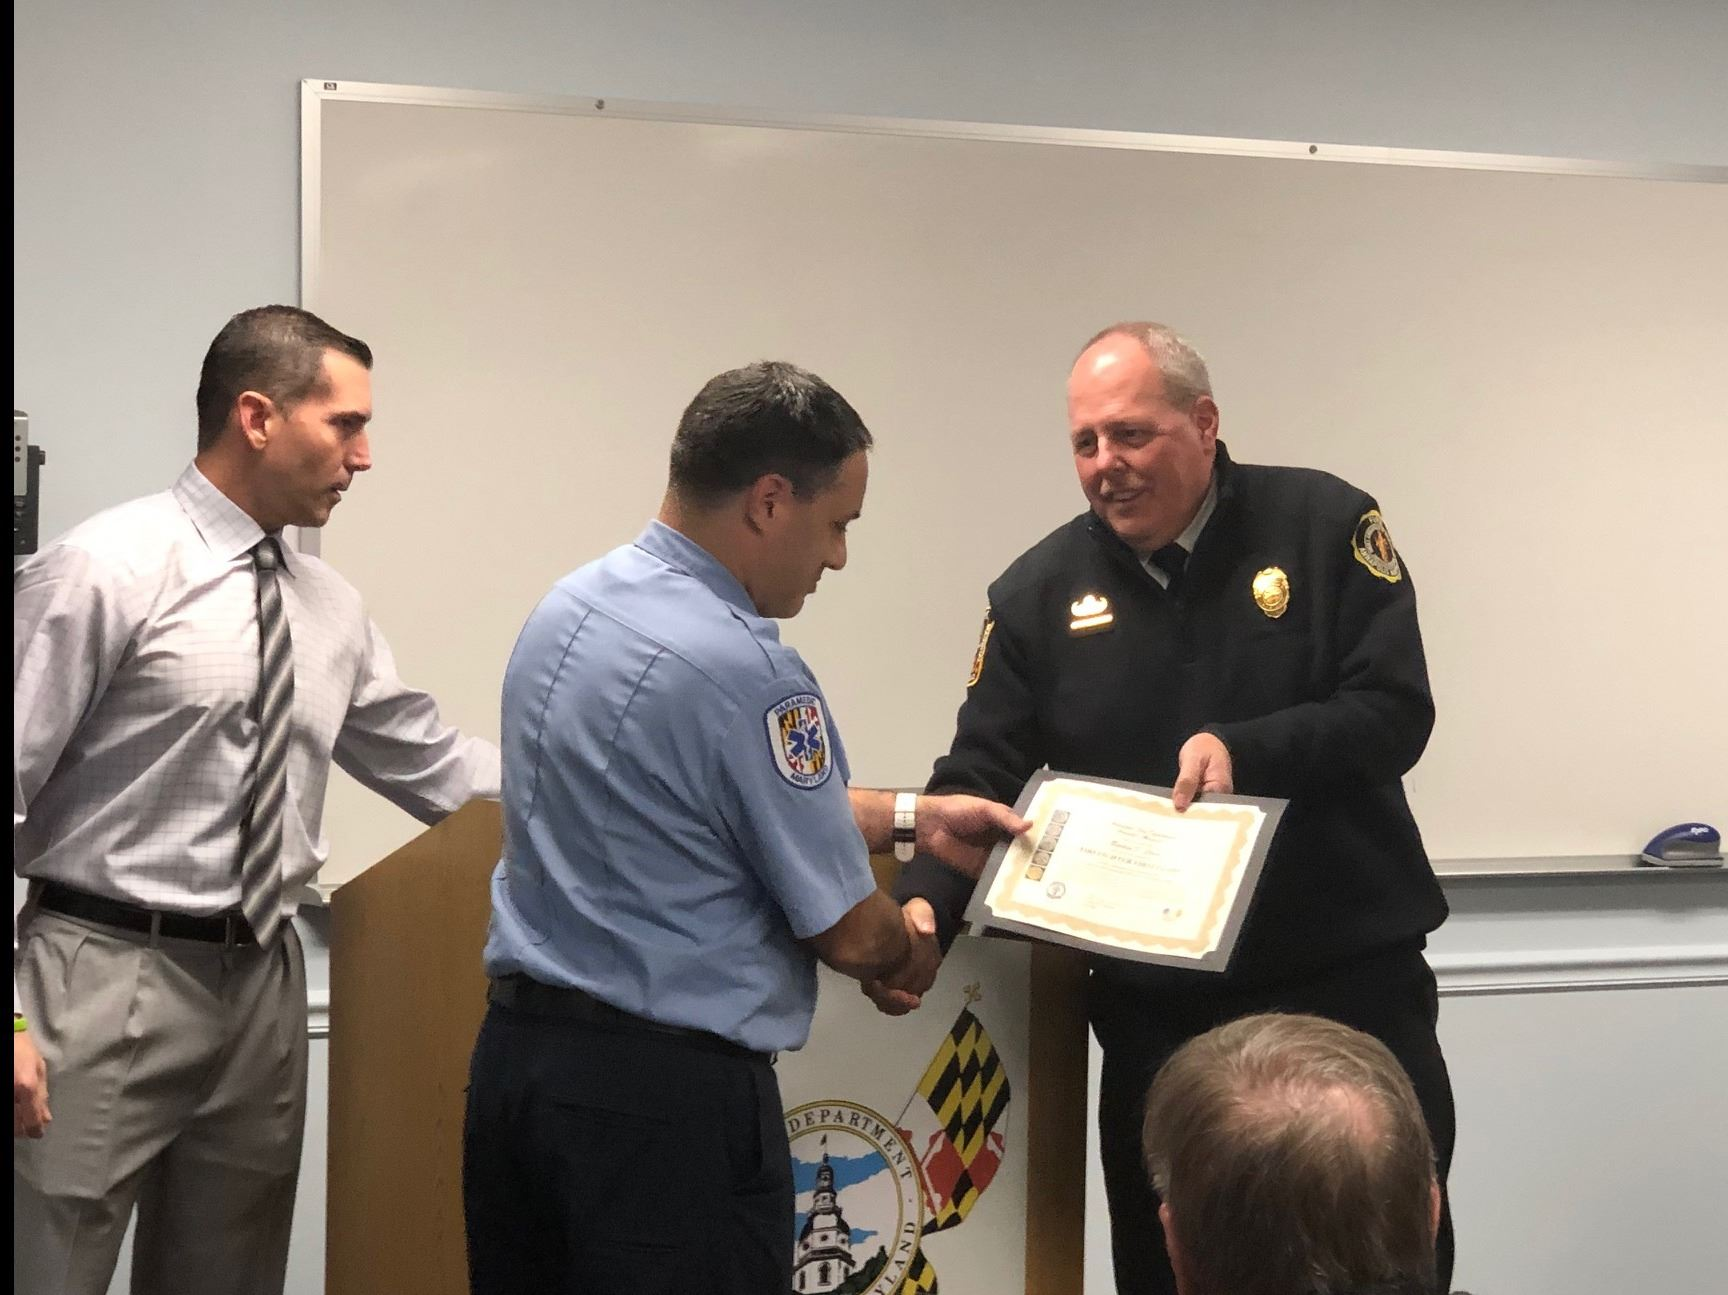 Chief Remaley presenting F1C Clark his certificate while shaking hands